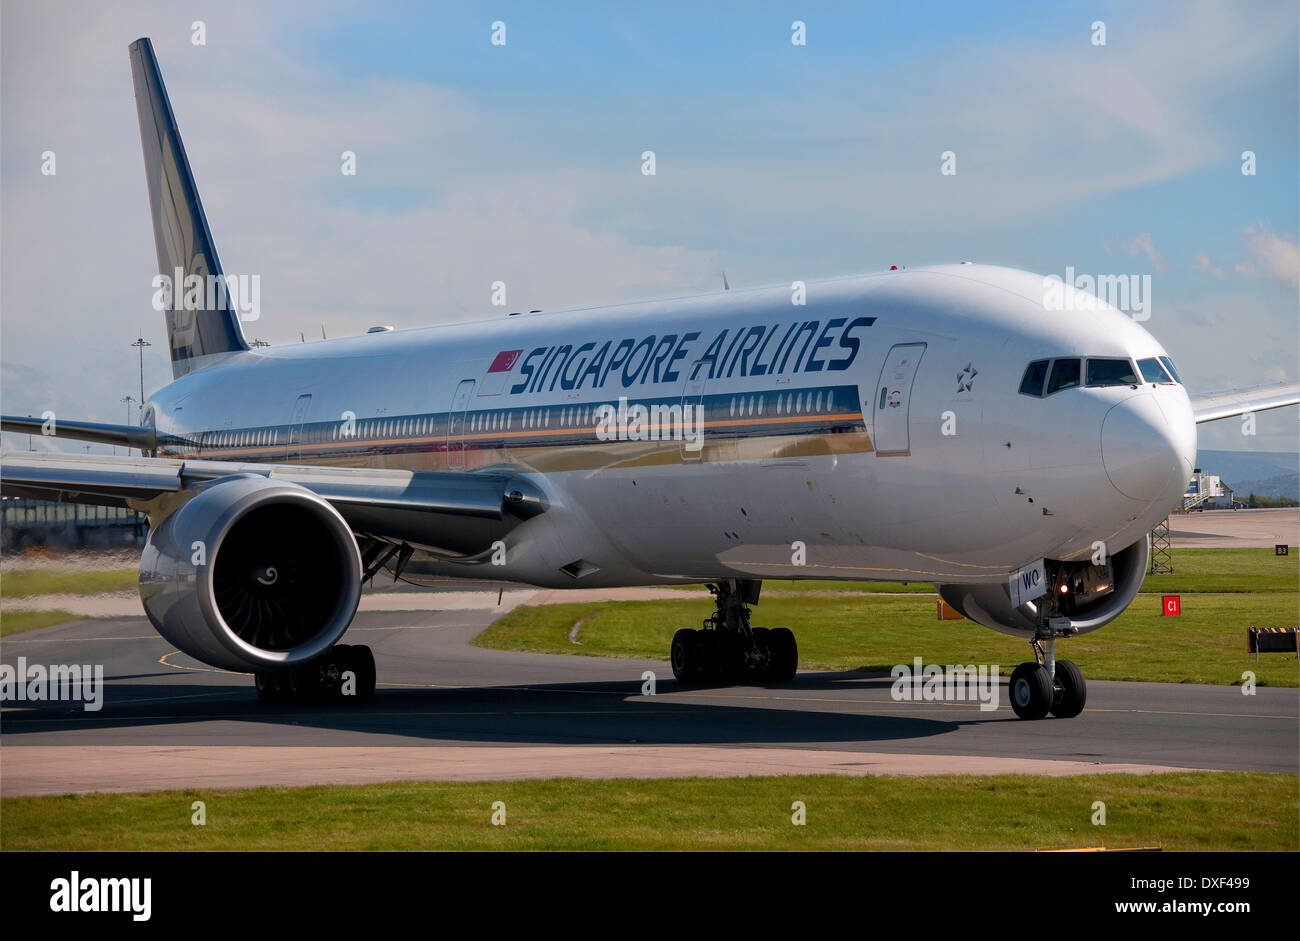 A singapore airlines boeing 777-300 taxis at manchester airport in 2012 england - Stock Image